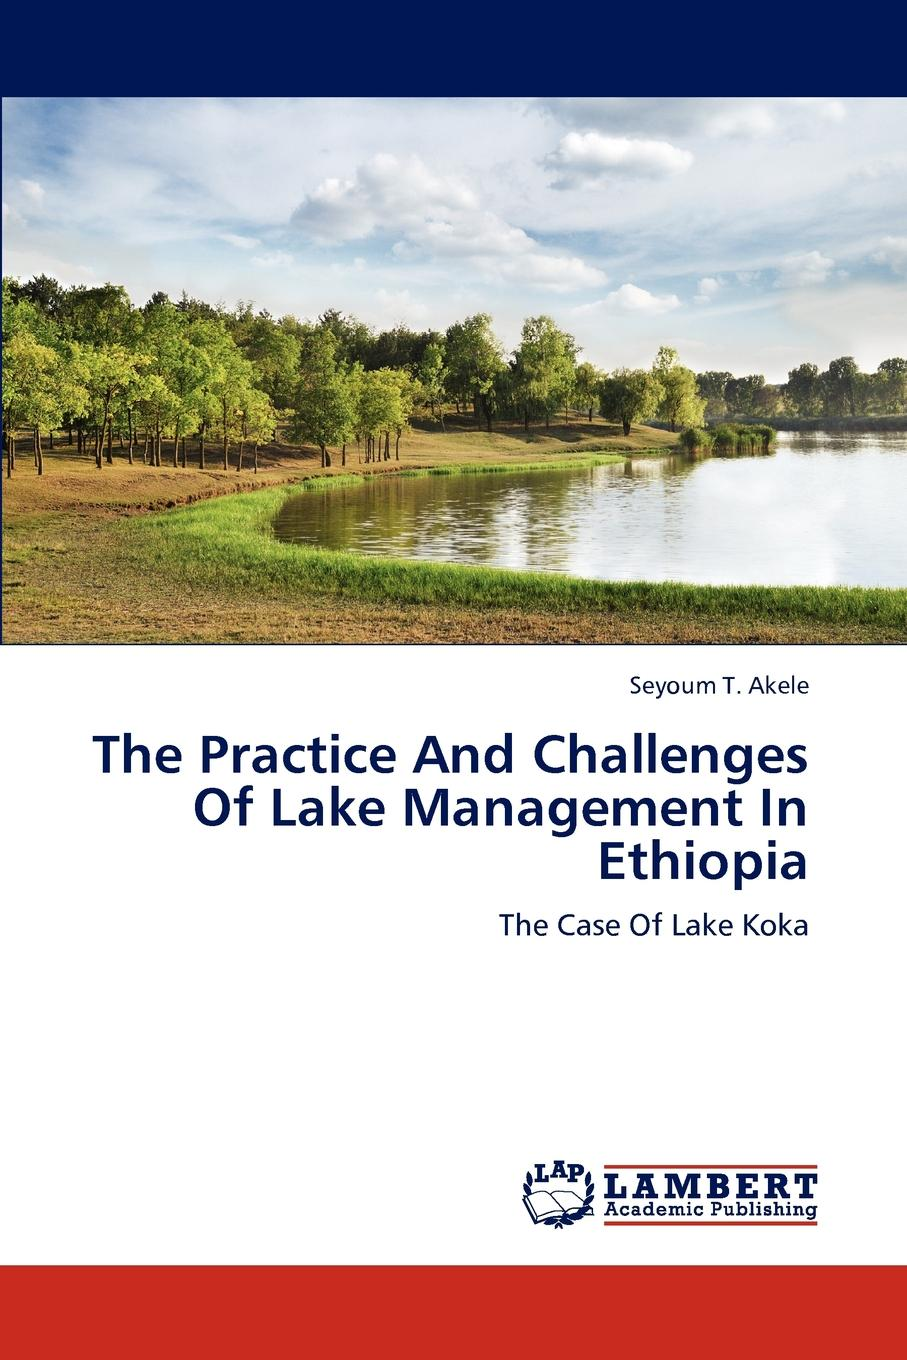 Seyoum T. Akele The Practice And Challenges Of Lake Management In Ethiopia development in catch and efforts in lake tana fisheries ethiopia